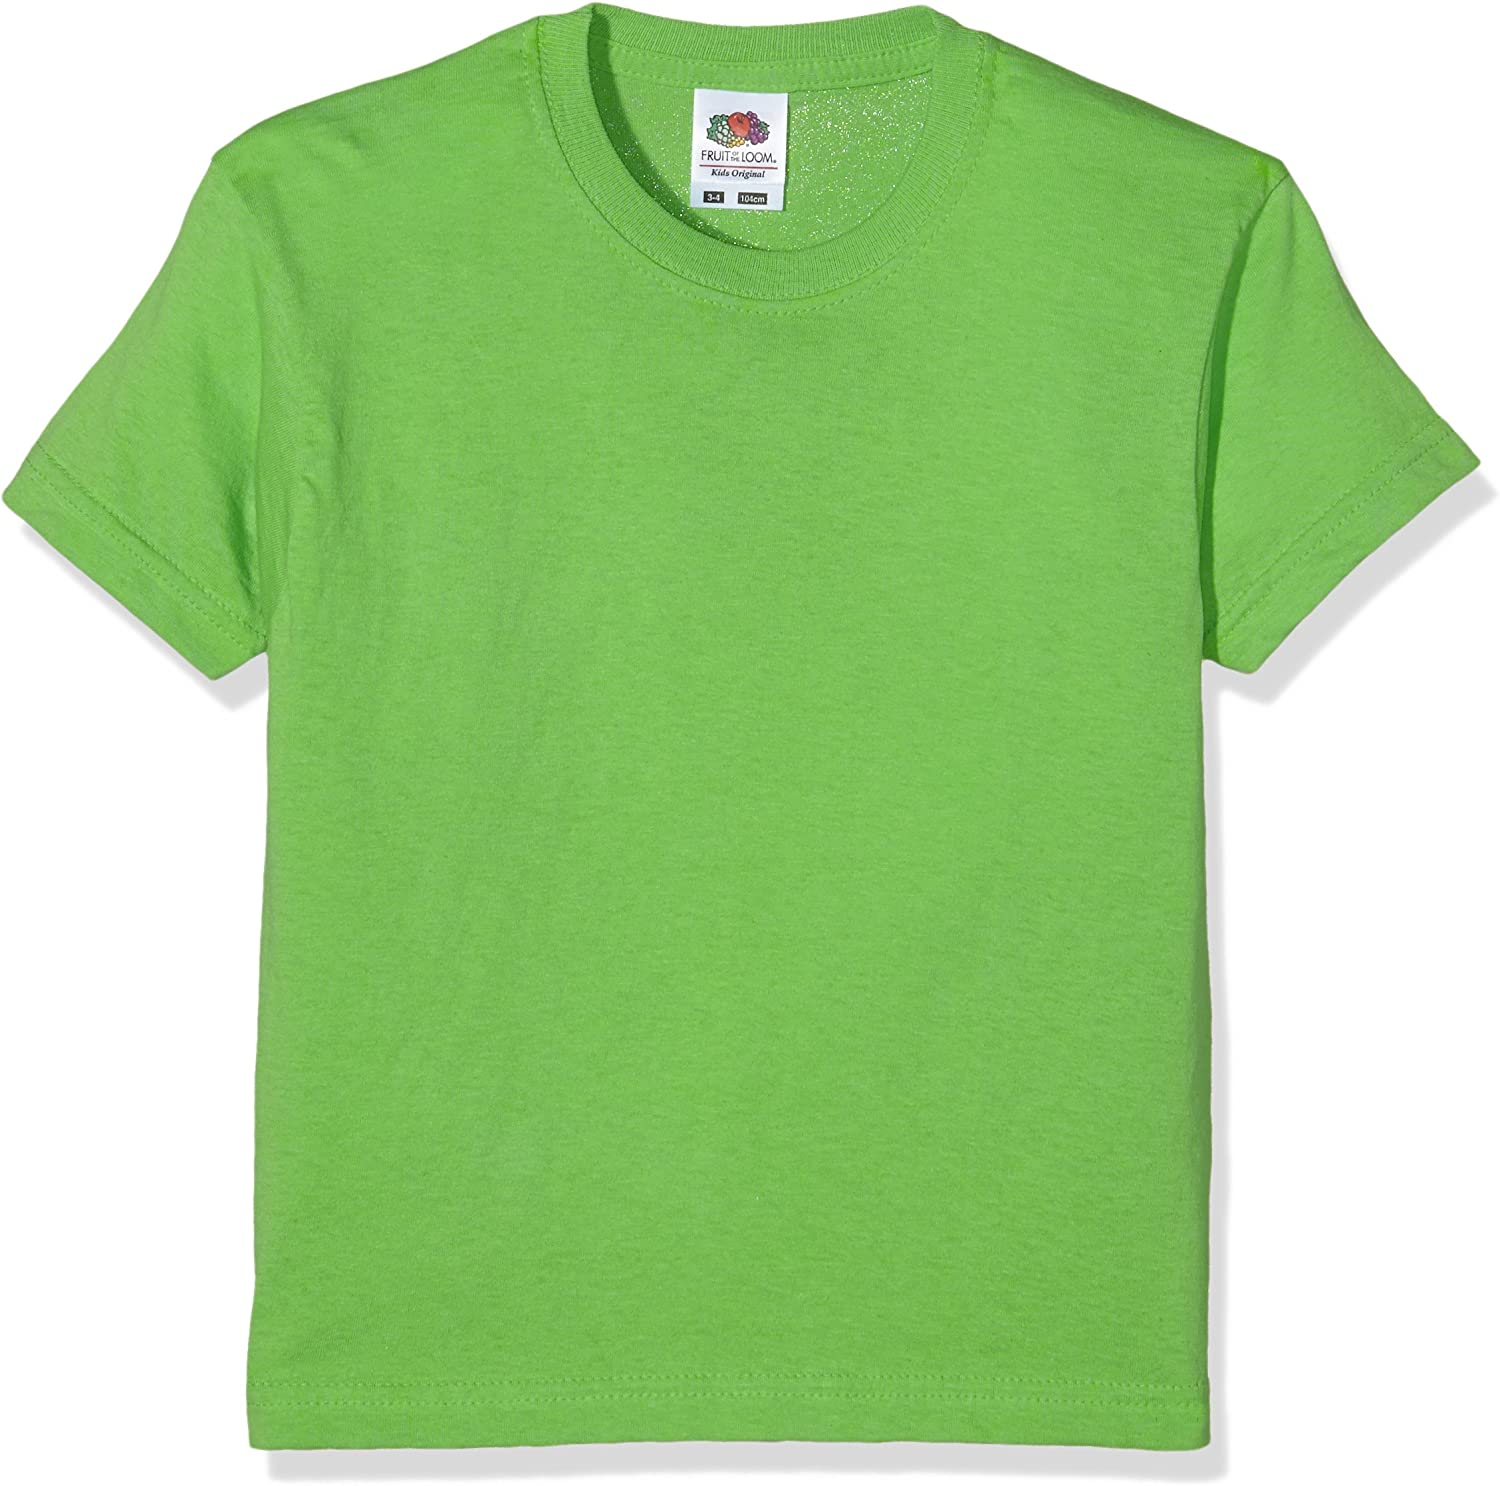 Fruit of the Loom Boys Original T T-Shirt